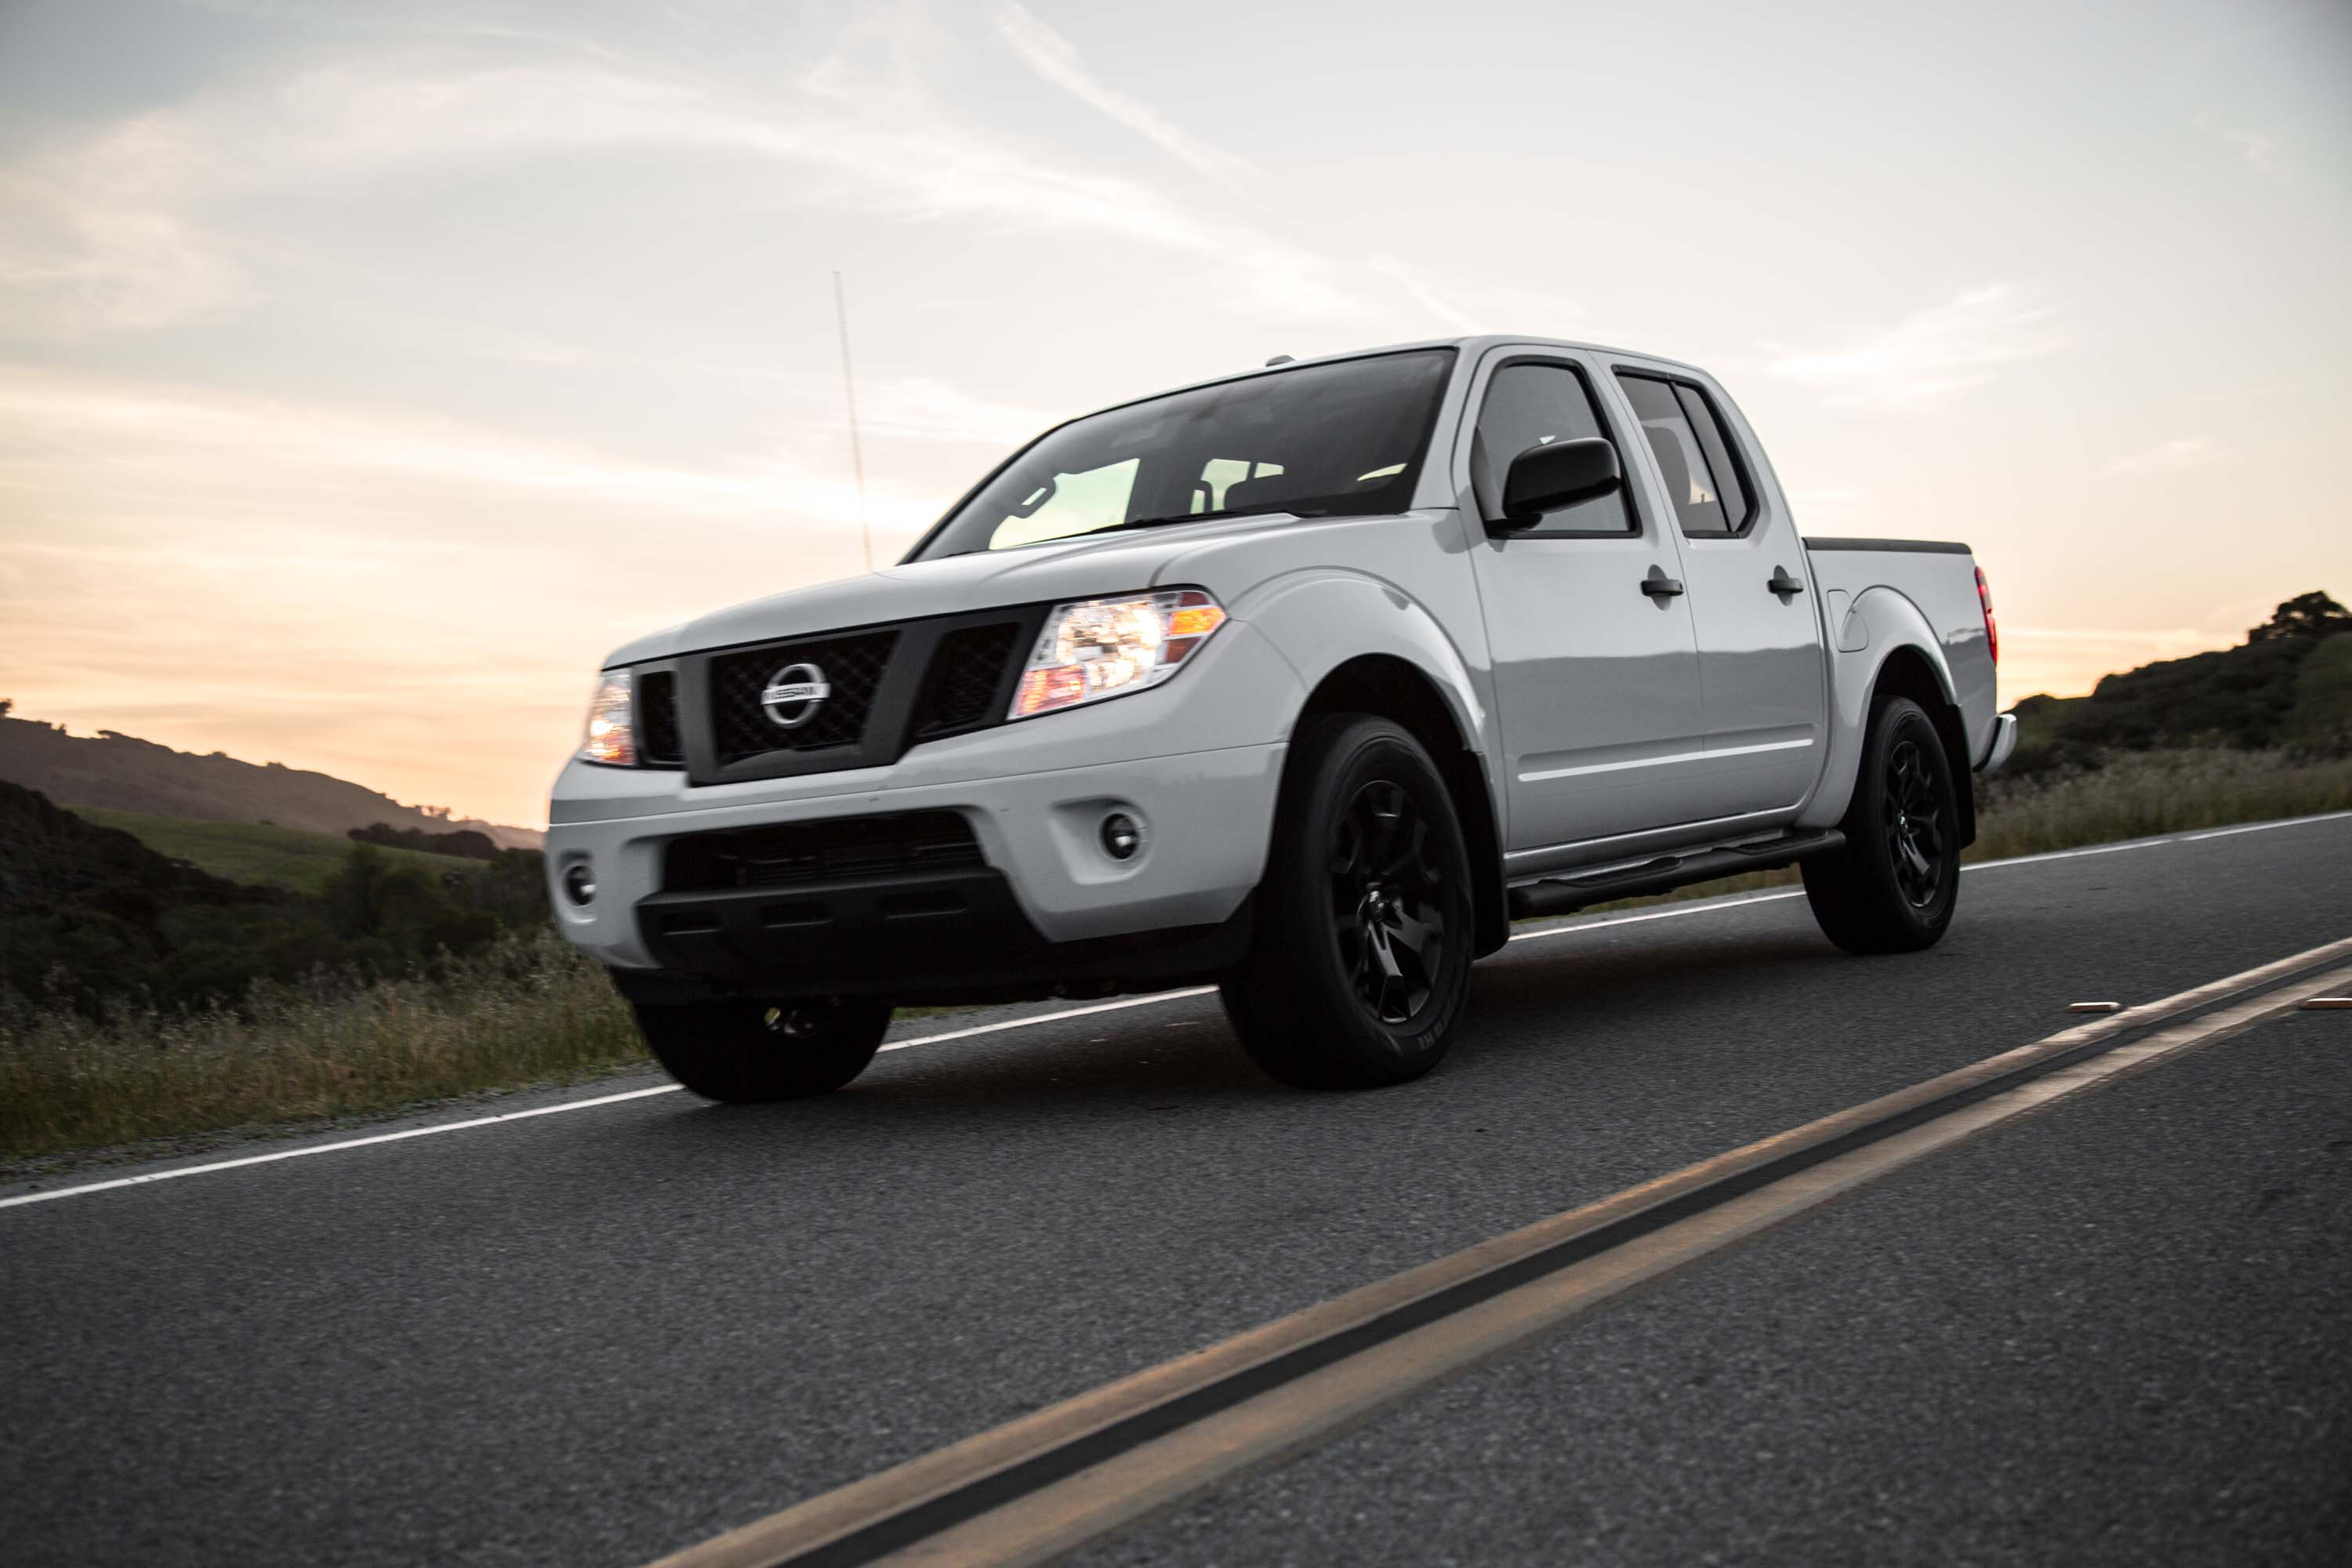 2019 Nissan Frontier Review, Ratings, Specs, Prices, and ... on